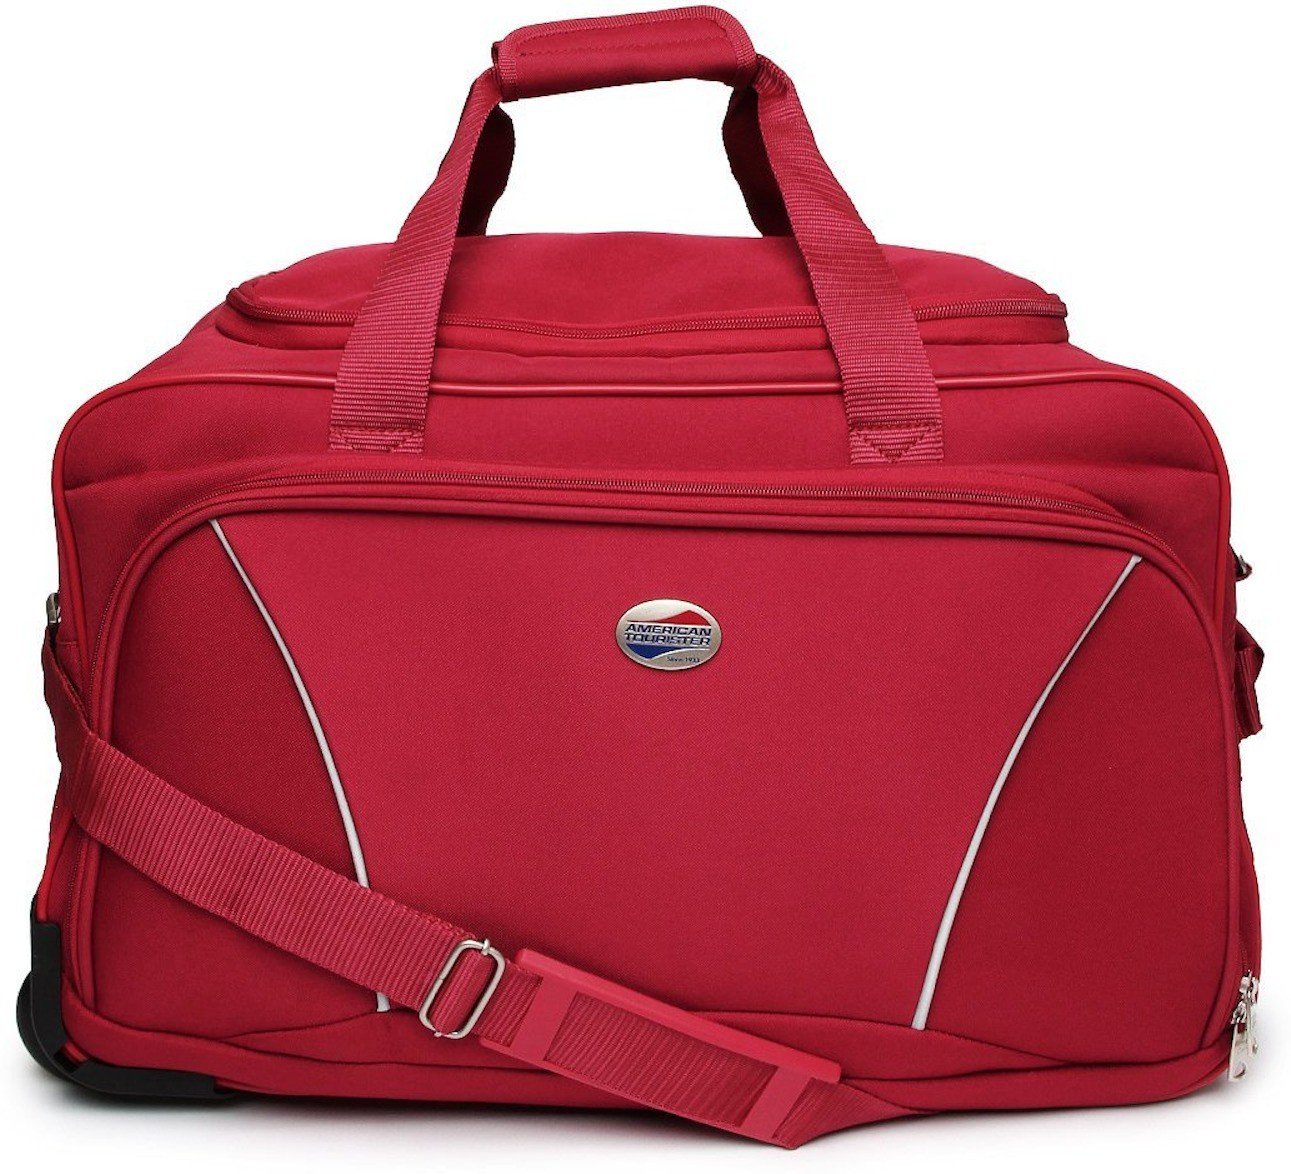 American Tourister Vision (Expandable) Duffel Strolley Bag(Red)